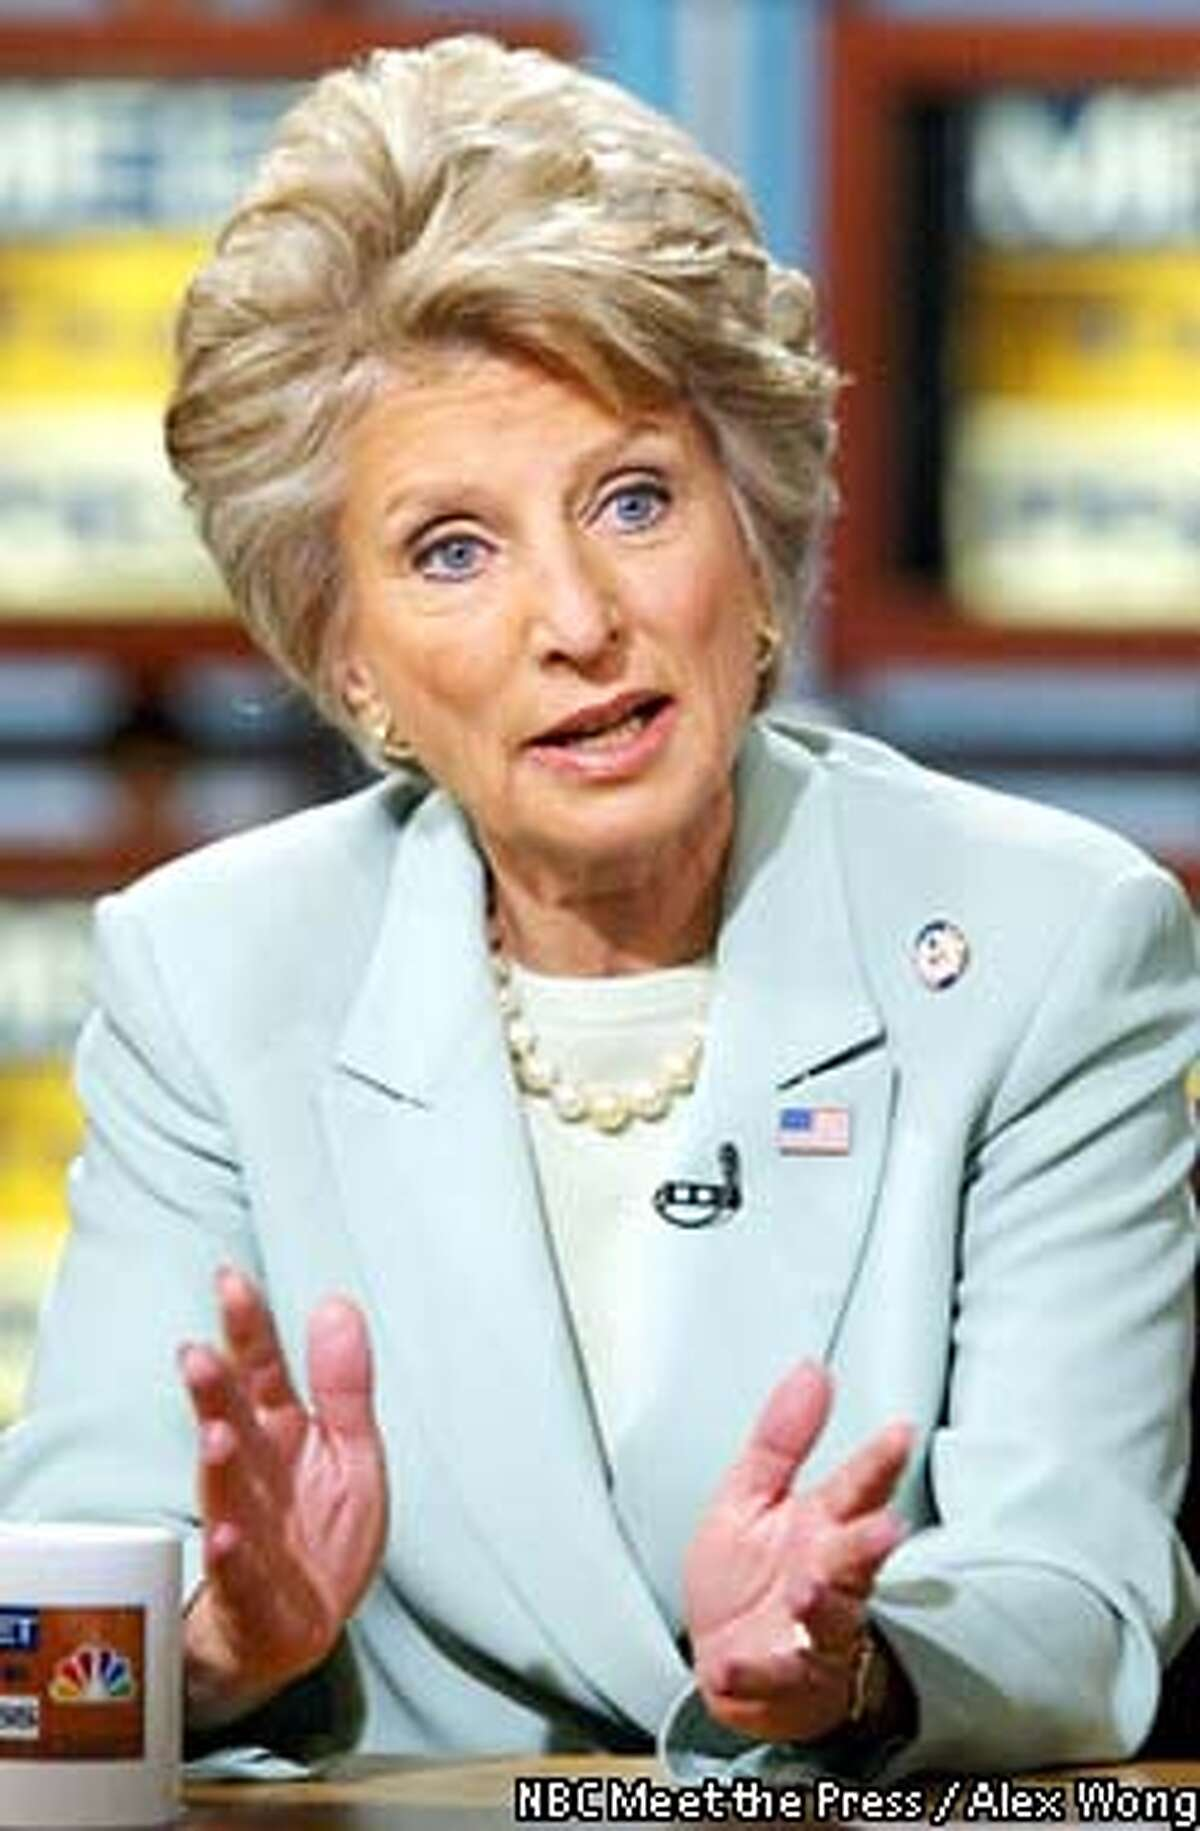 """Rep. Jane , D-Calif., is interviewed on NBC's """"Meet the Press"""" in Washington, May 18, 2003. spoke about the recent terrorist attacks in Saudi Arabia, the war on terrorism., and U.S.-Saudi relations. (AP Photo/NBC Meet the Press, Alex Wong) ** MANDATORY CREDIT **"""